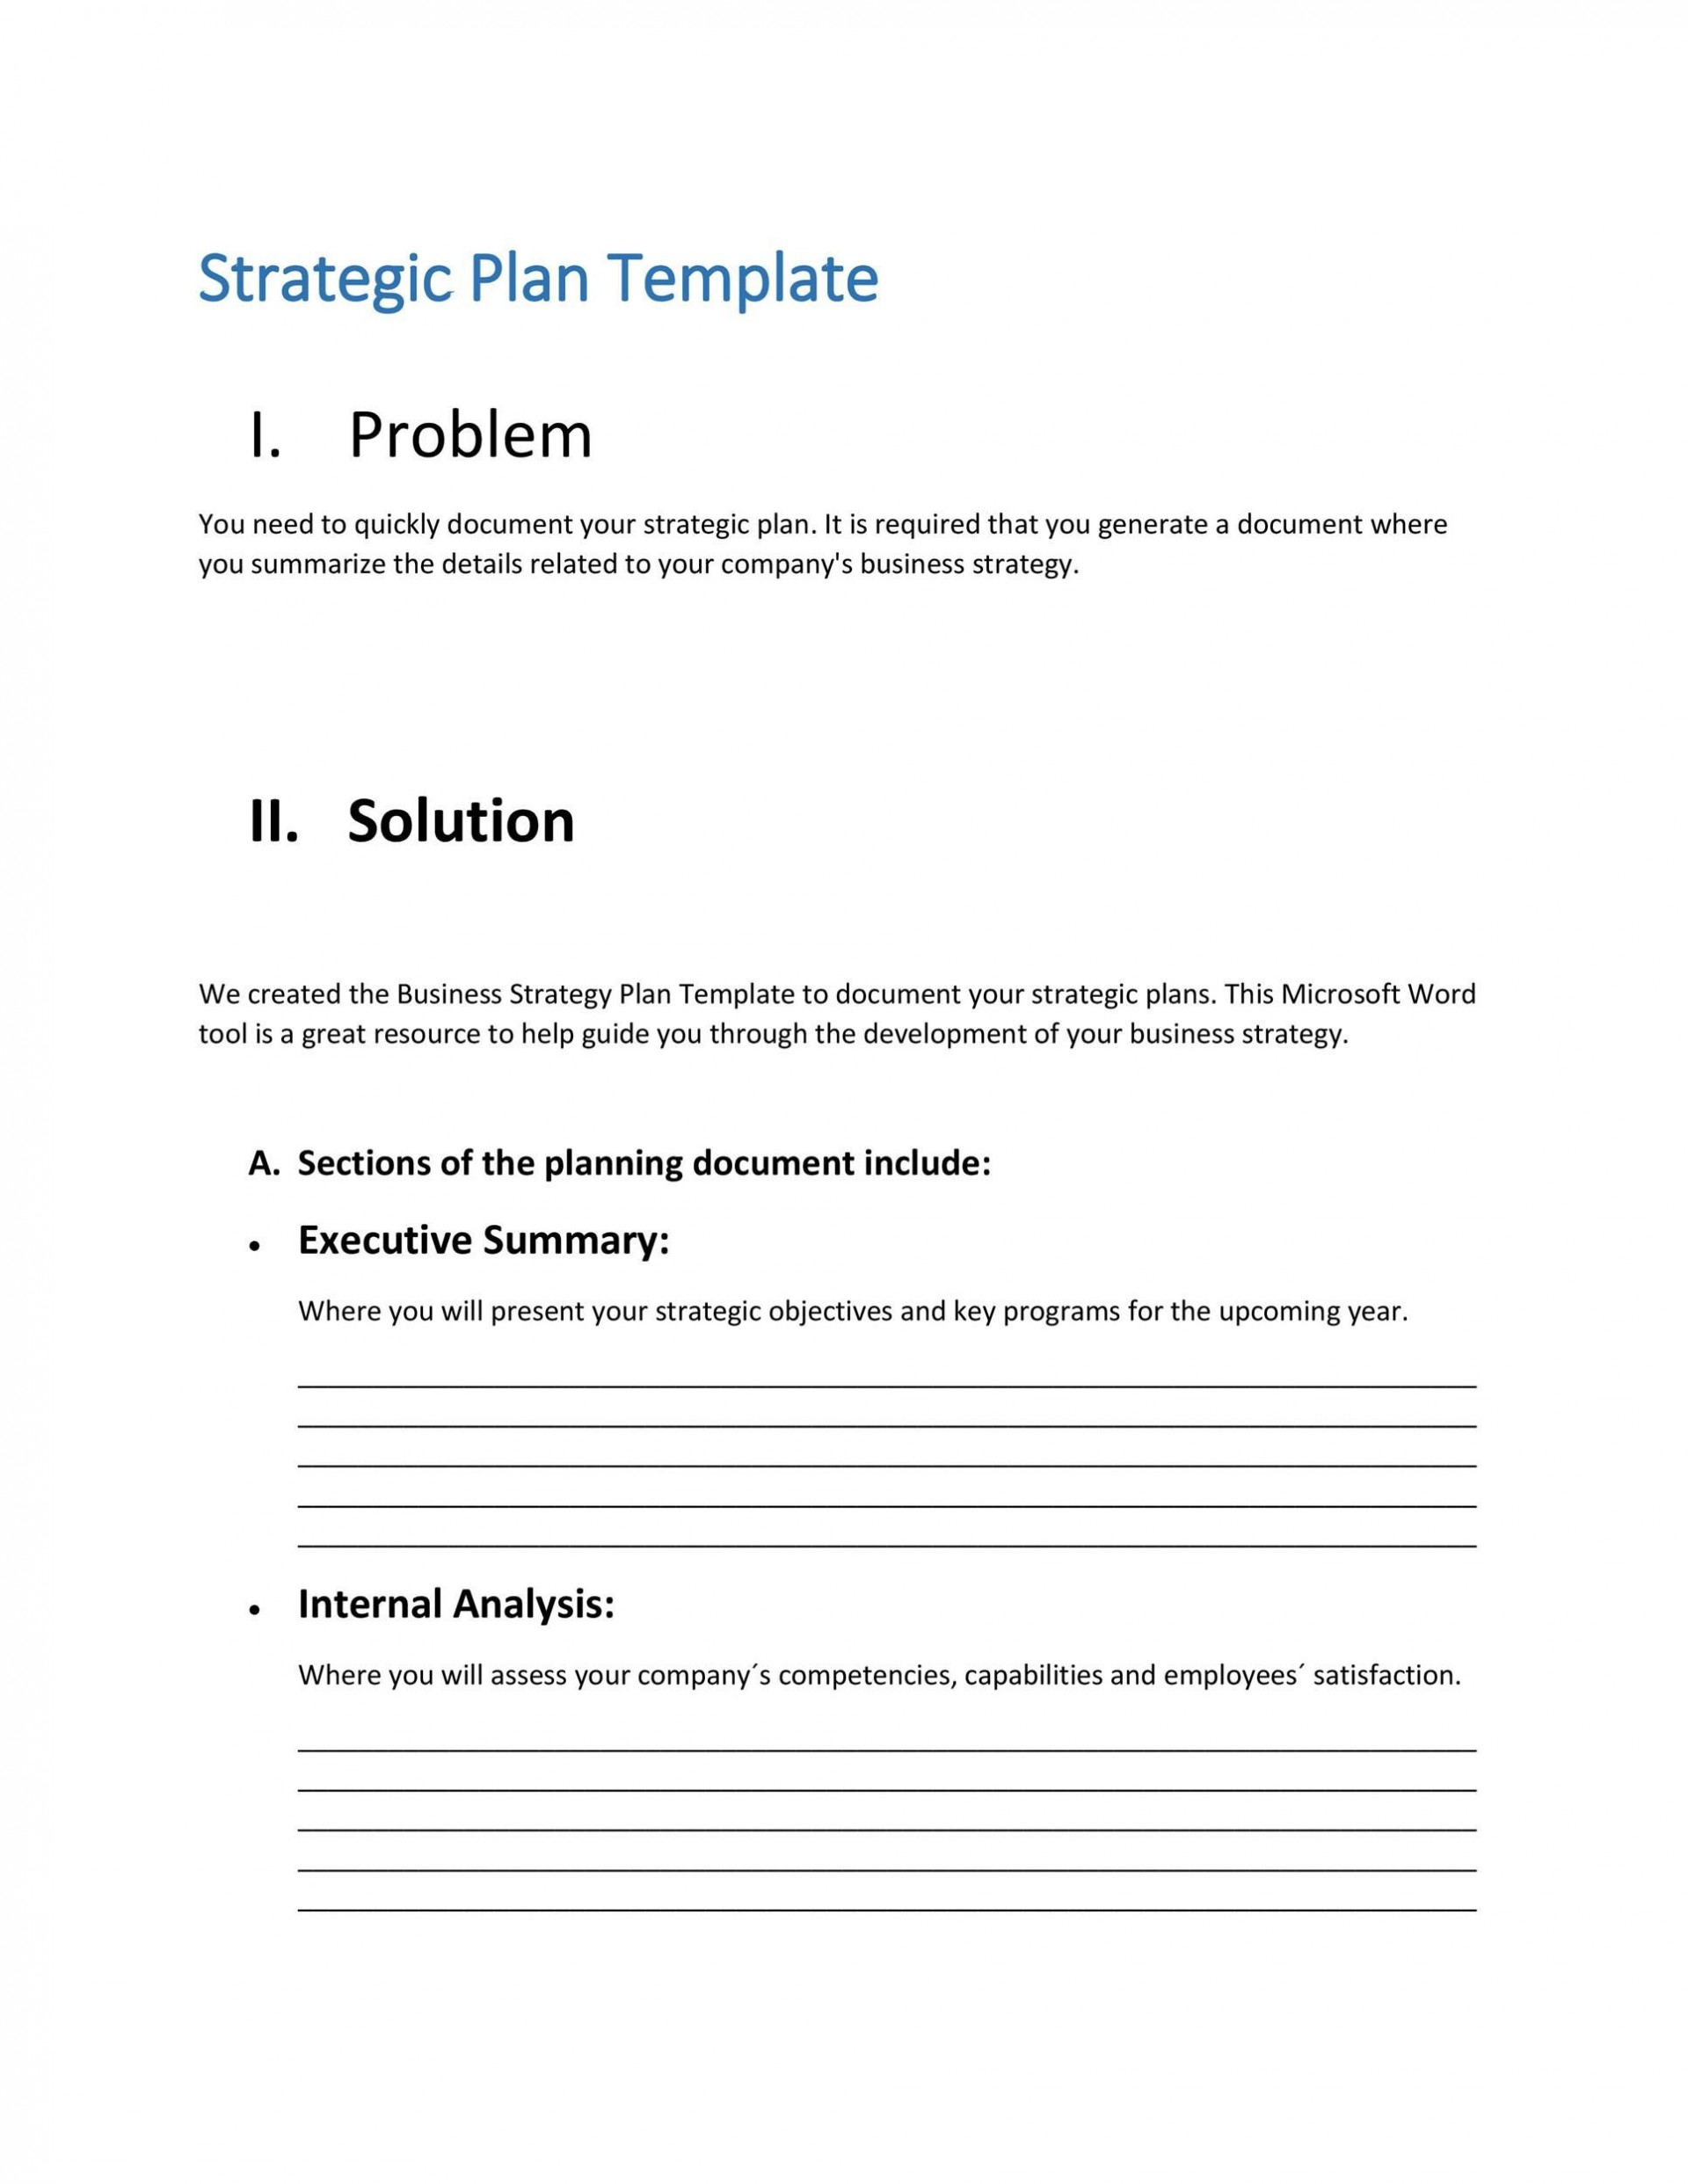 008 Exceptional Strategic Plan Outline Template High Definition  Marketing1920